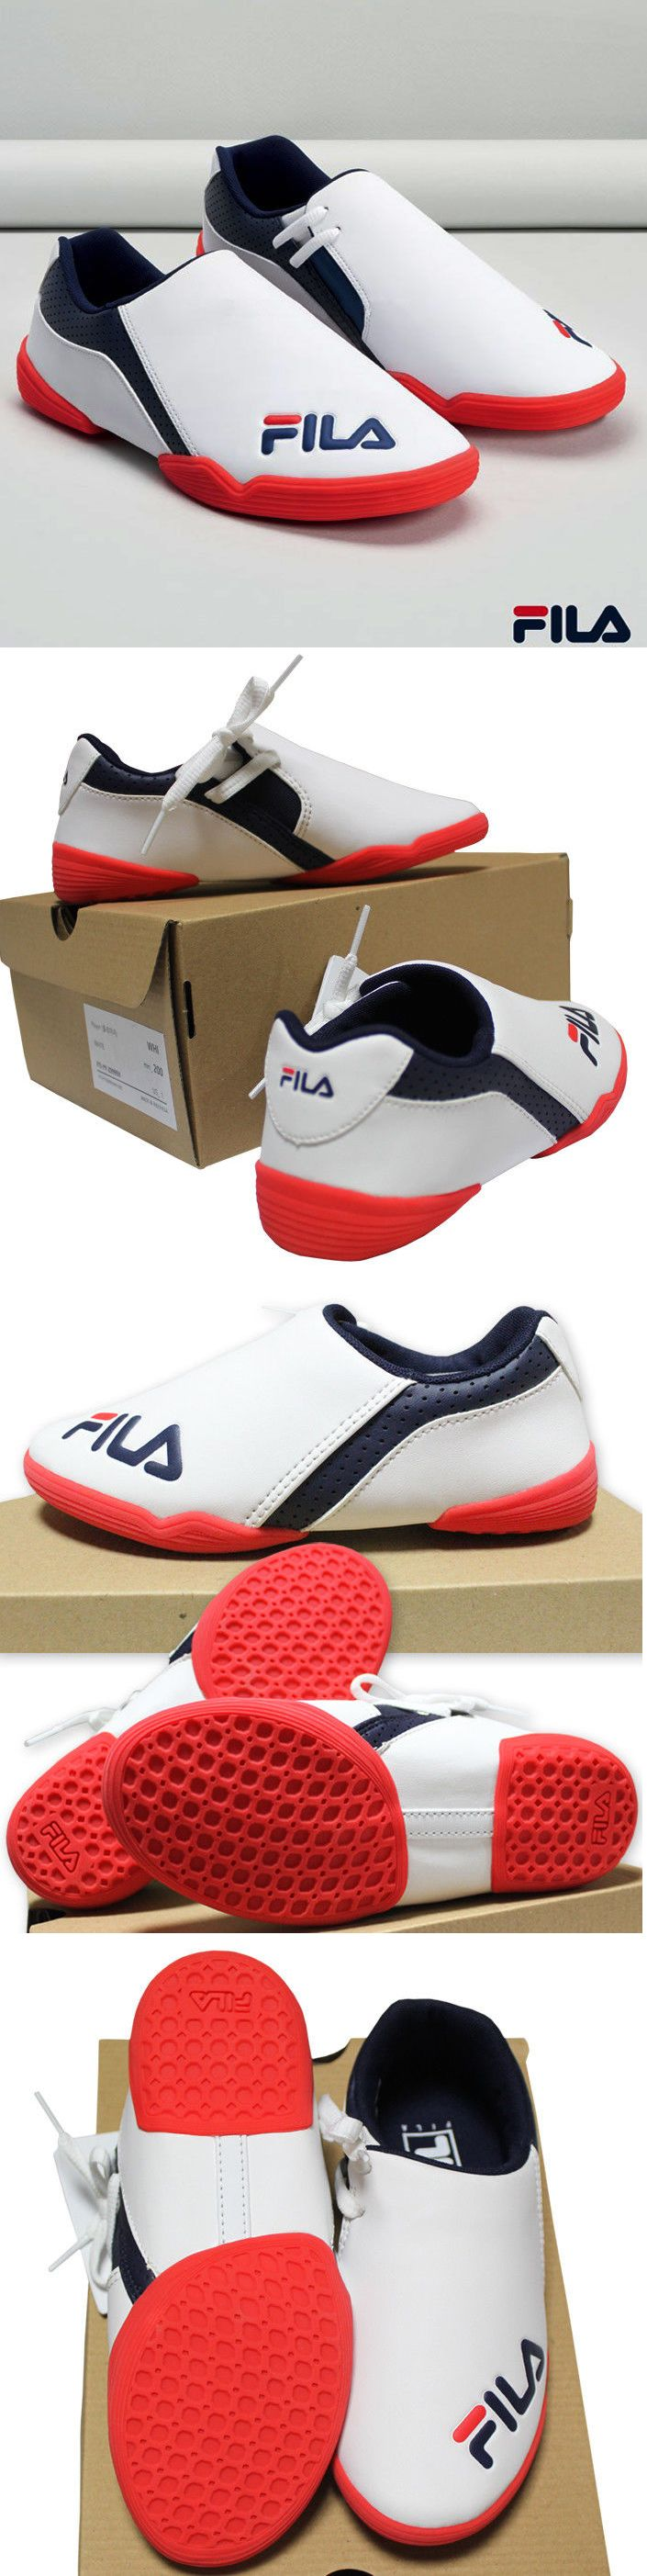 Clothing Shoes and Accessories 73980: Fila Taekwondo Shoes